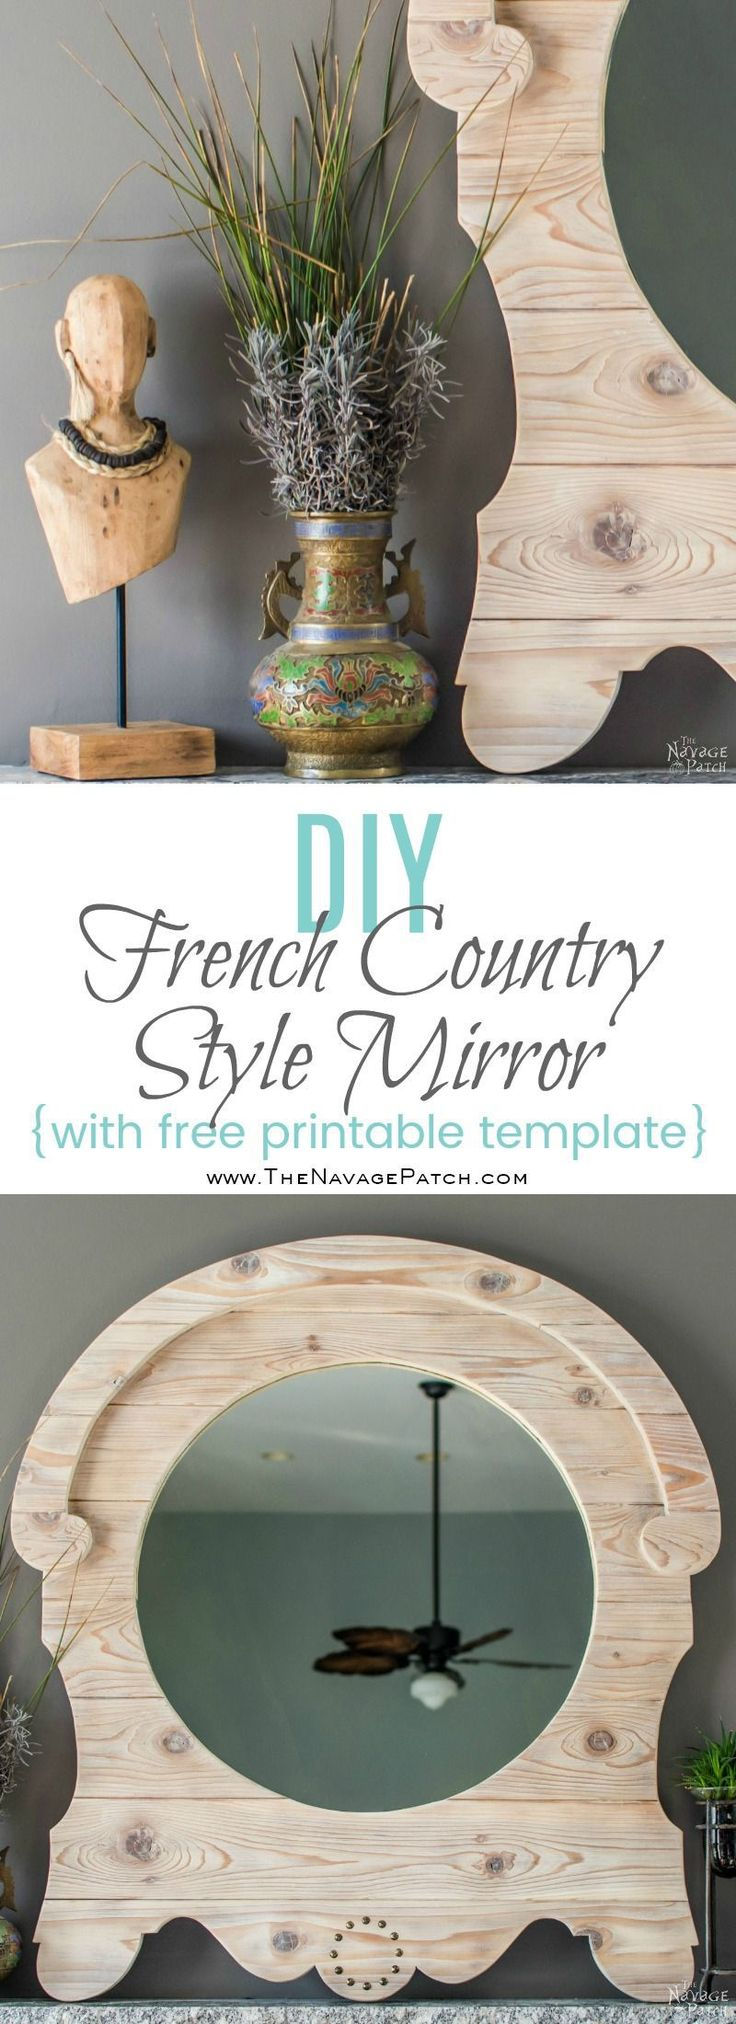 Hometalk diy christmas window decoration - Diy French Country Style Mirror Upcycled Mirror With A Diy Frame Diy Home Decor